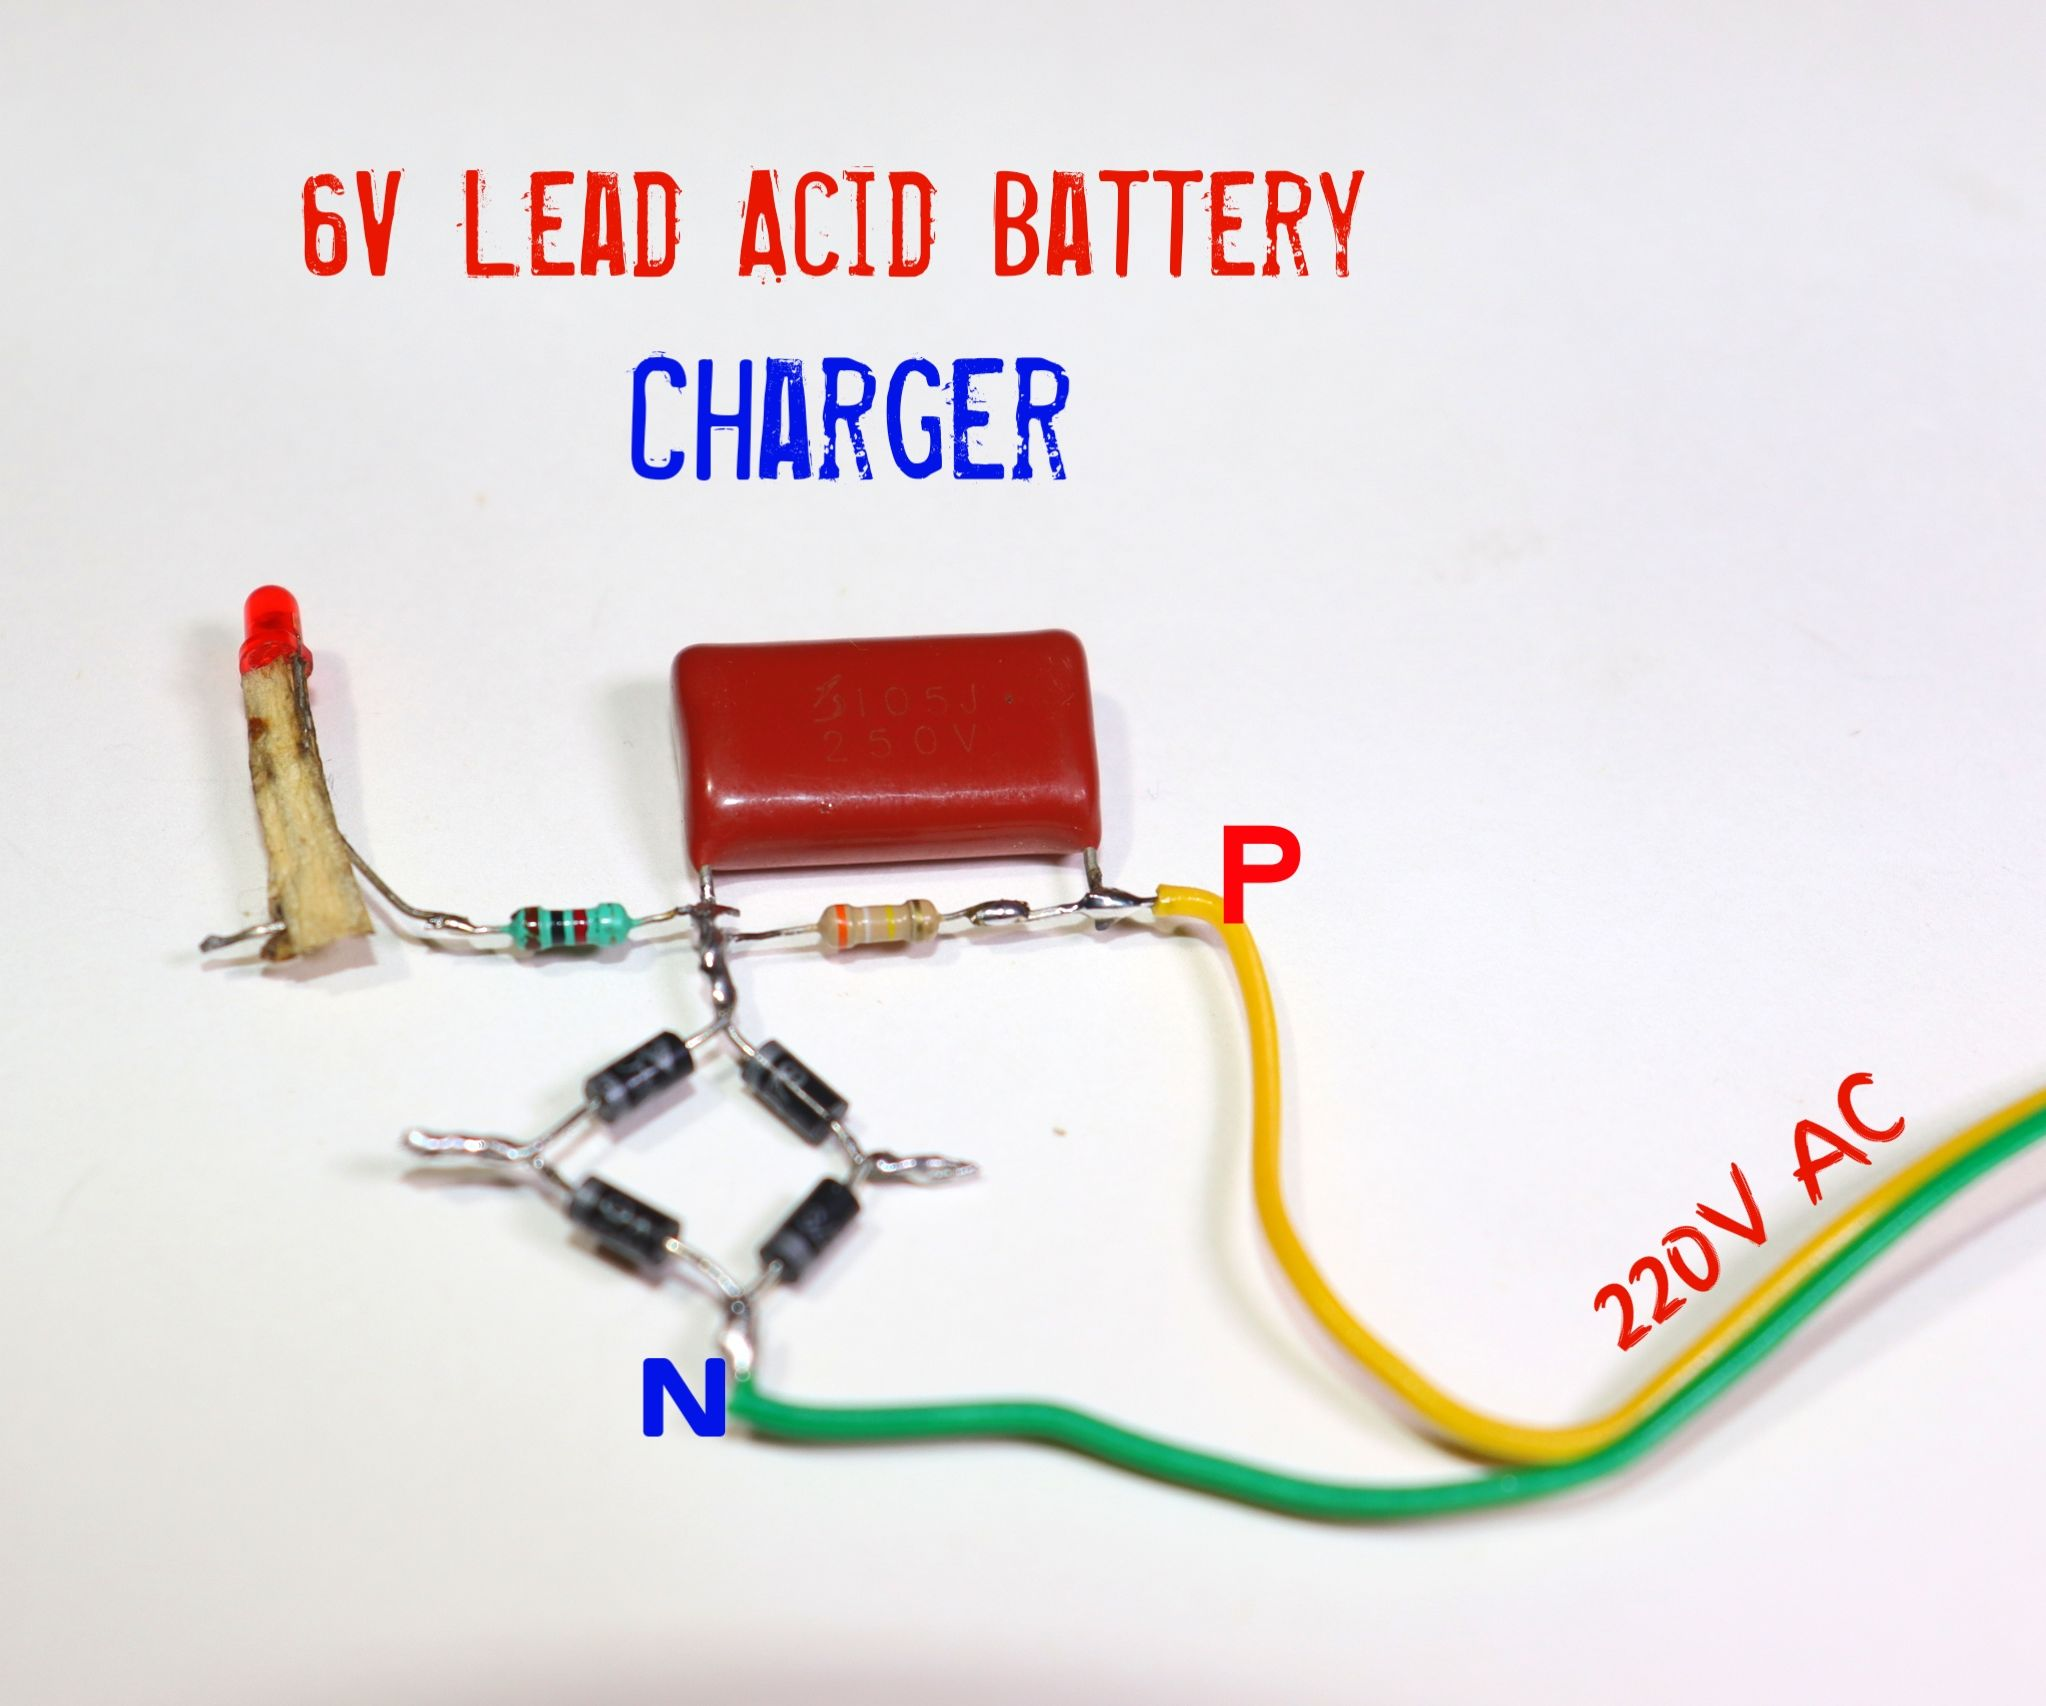 How to Make 6V Lead Acid Battery Charger : 11 Steps - Instructables | Battery Charger Transformer Wiring Diagram |  | Instructables